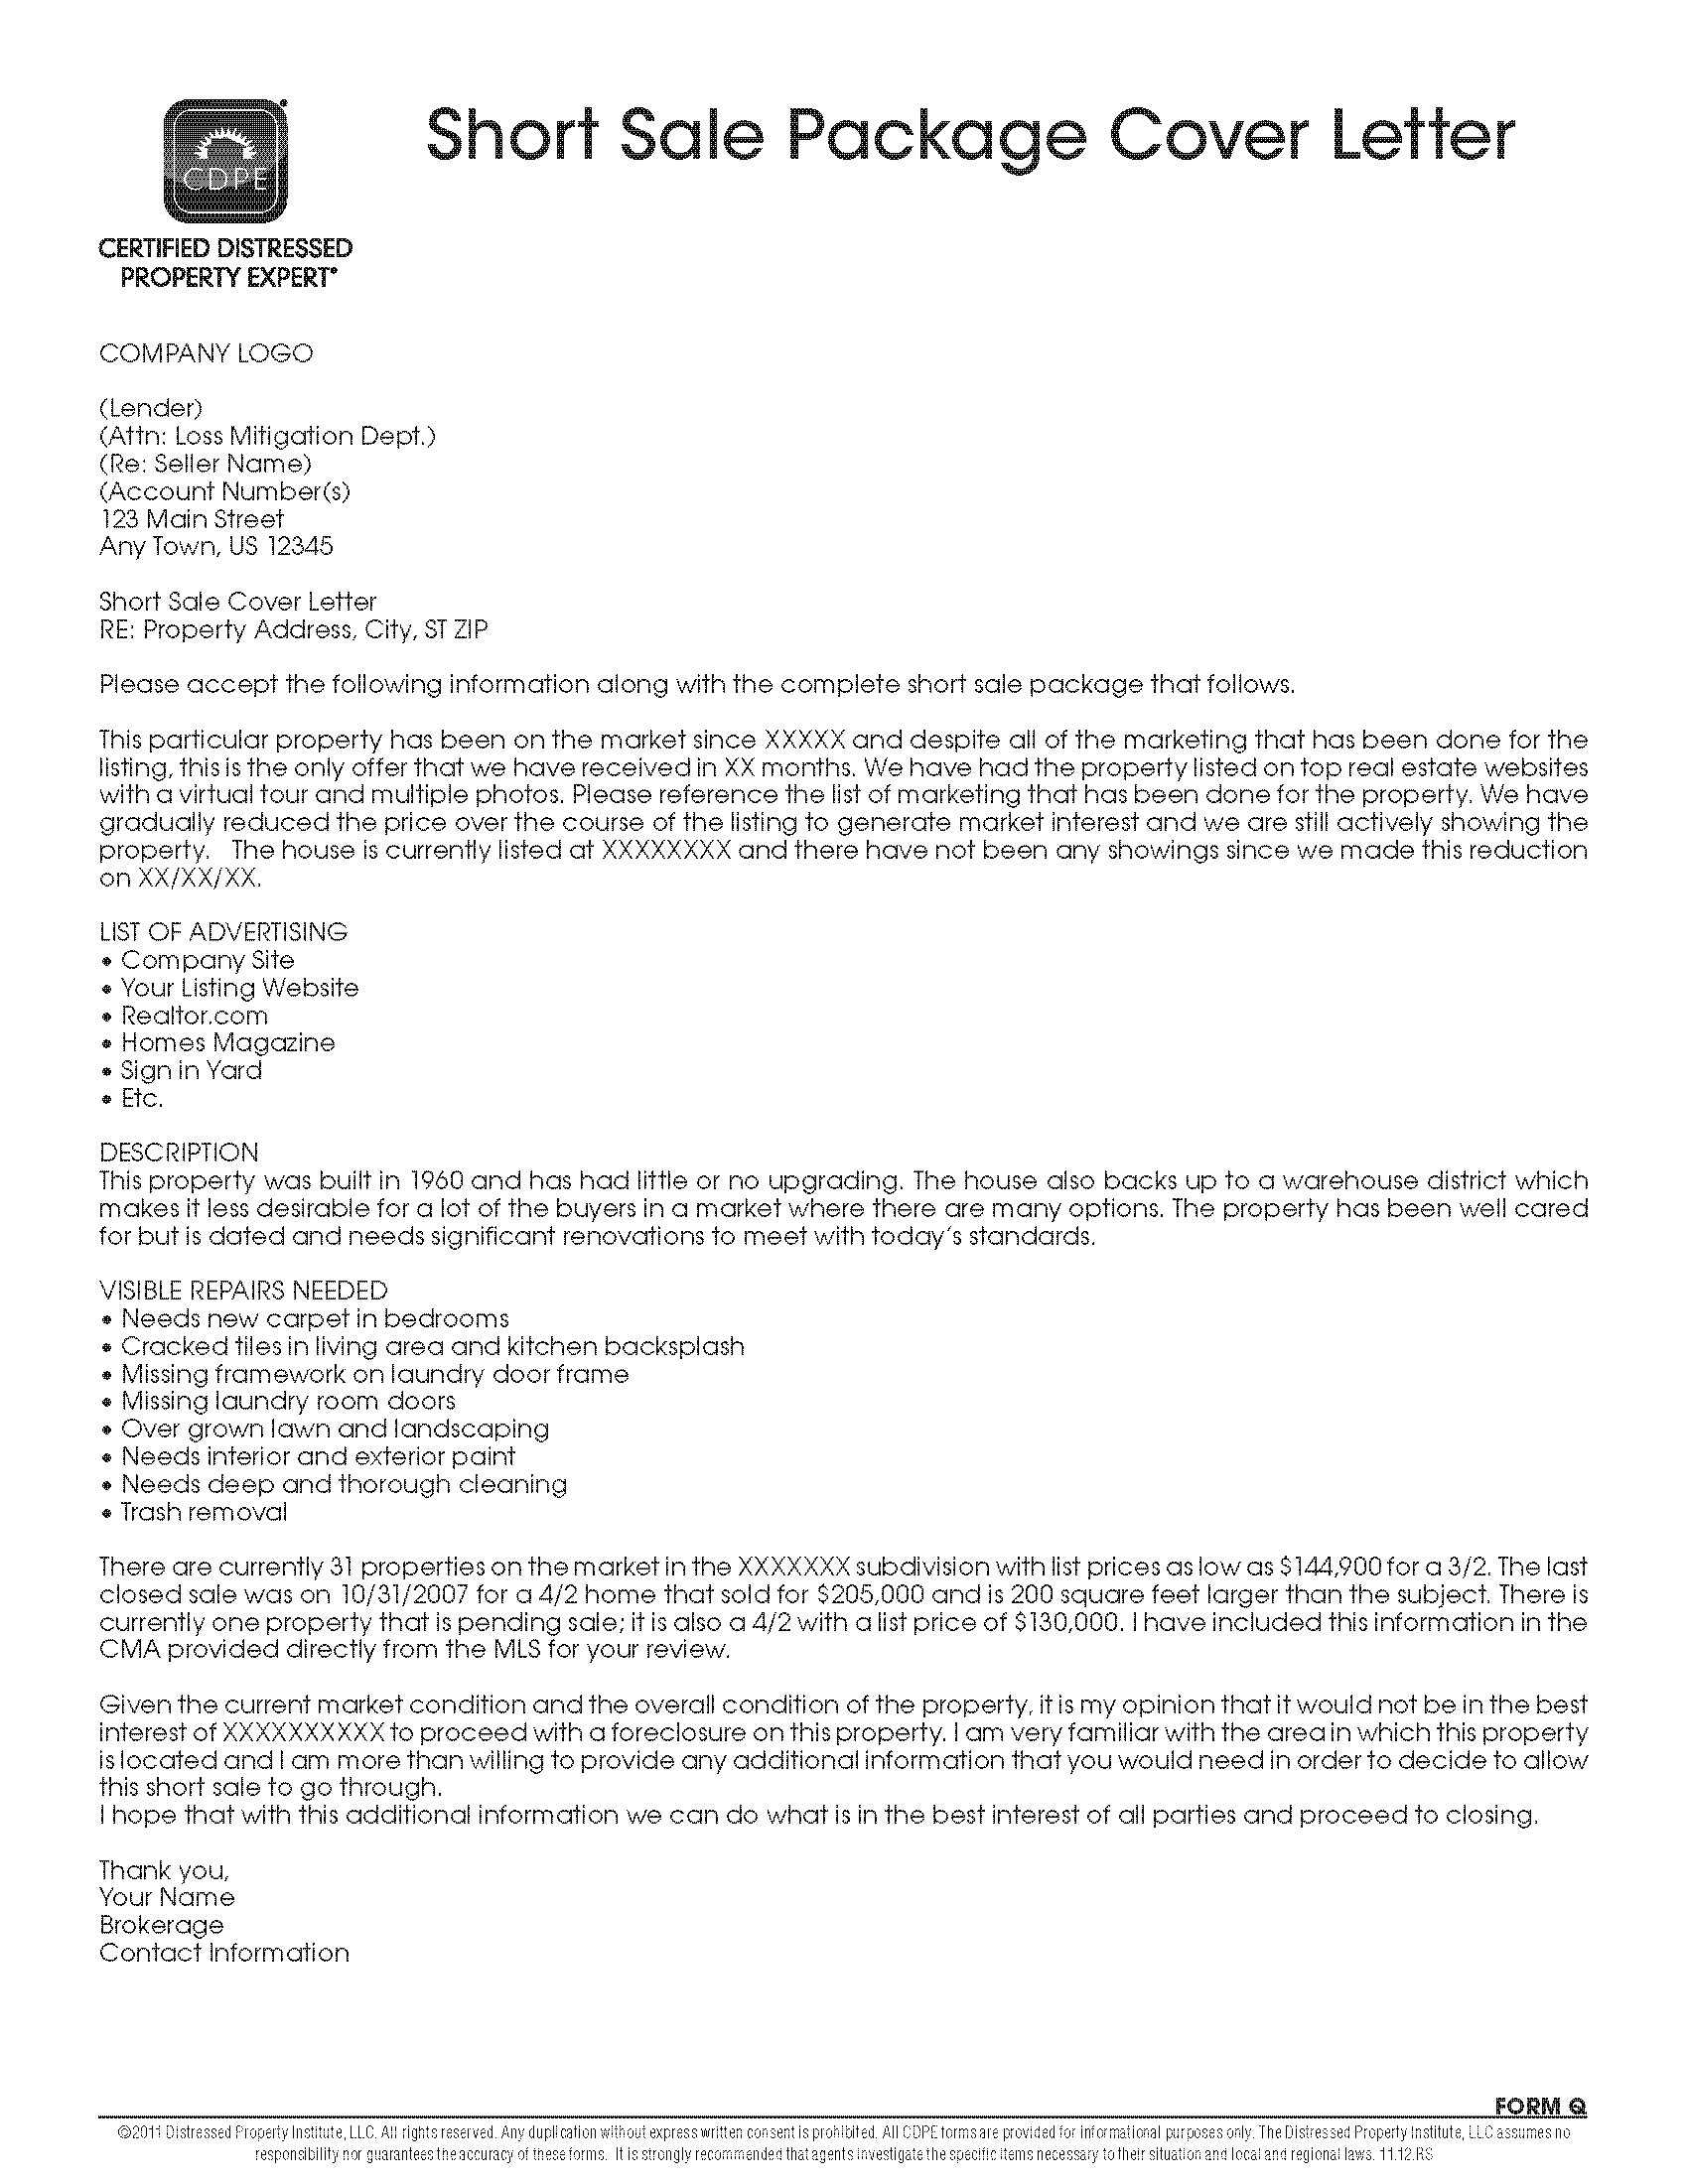 Business for Sale Letter Template - Unique Corporate Express Templates